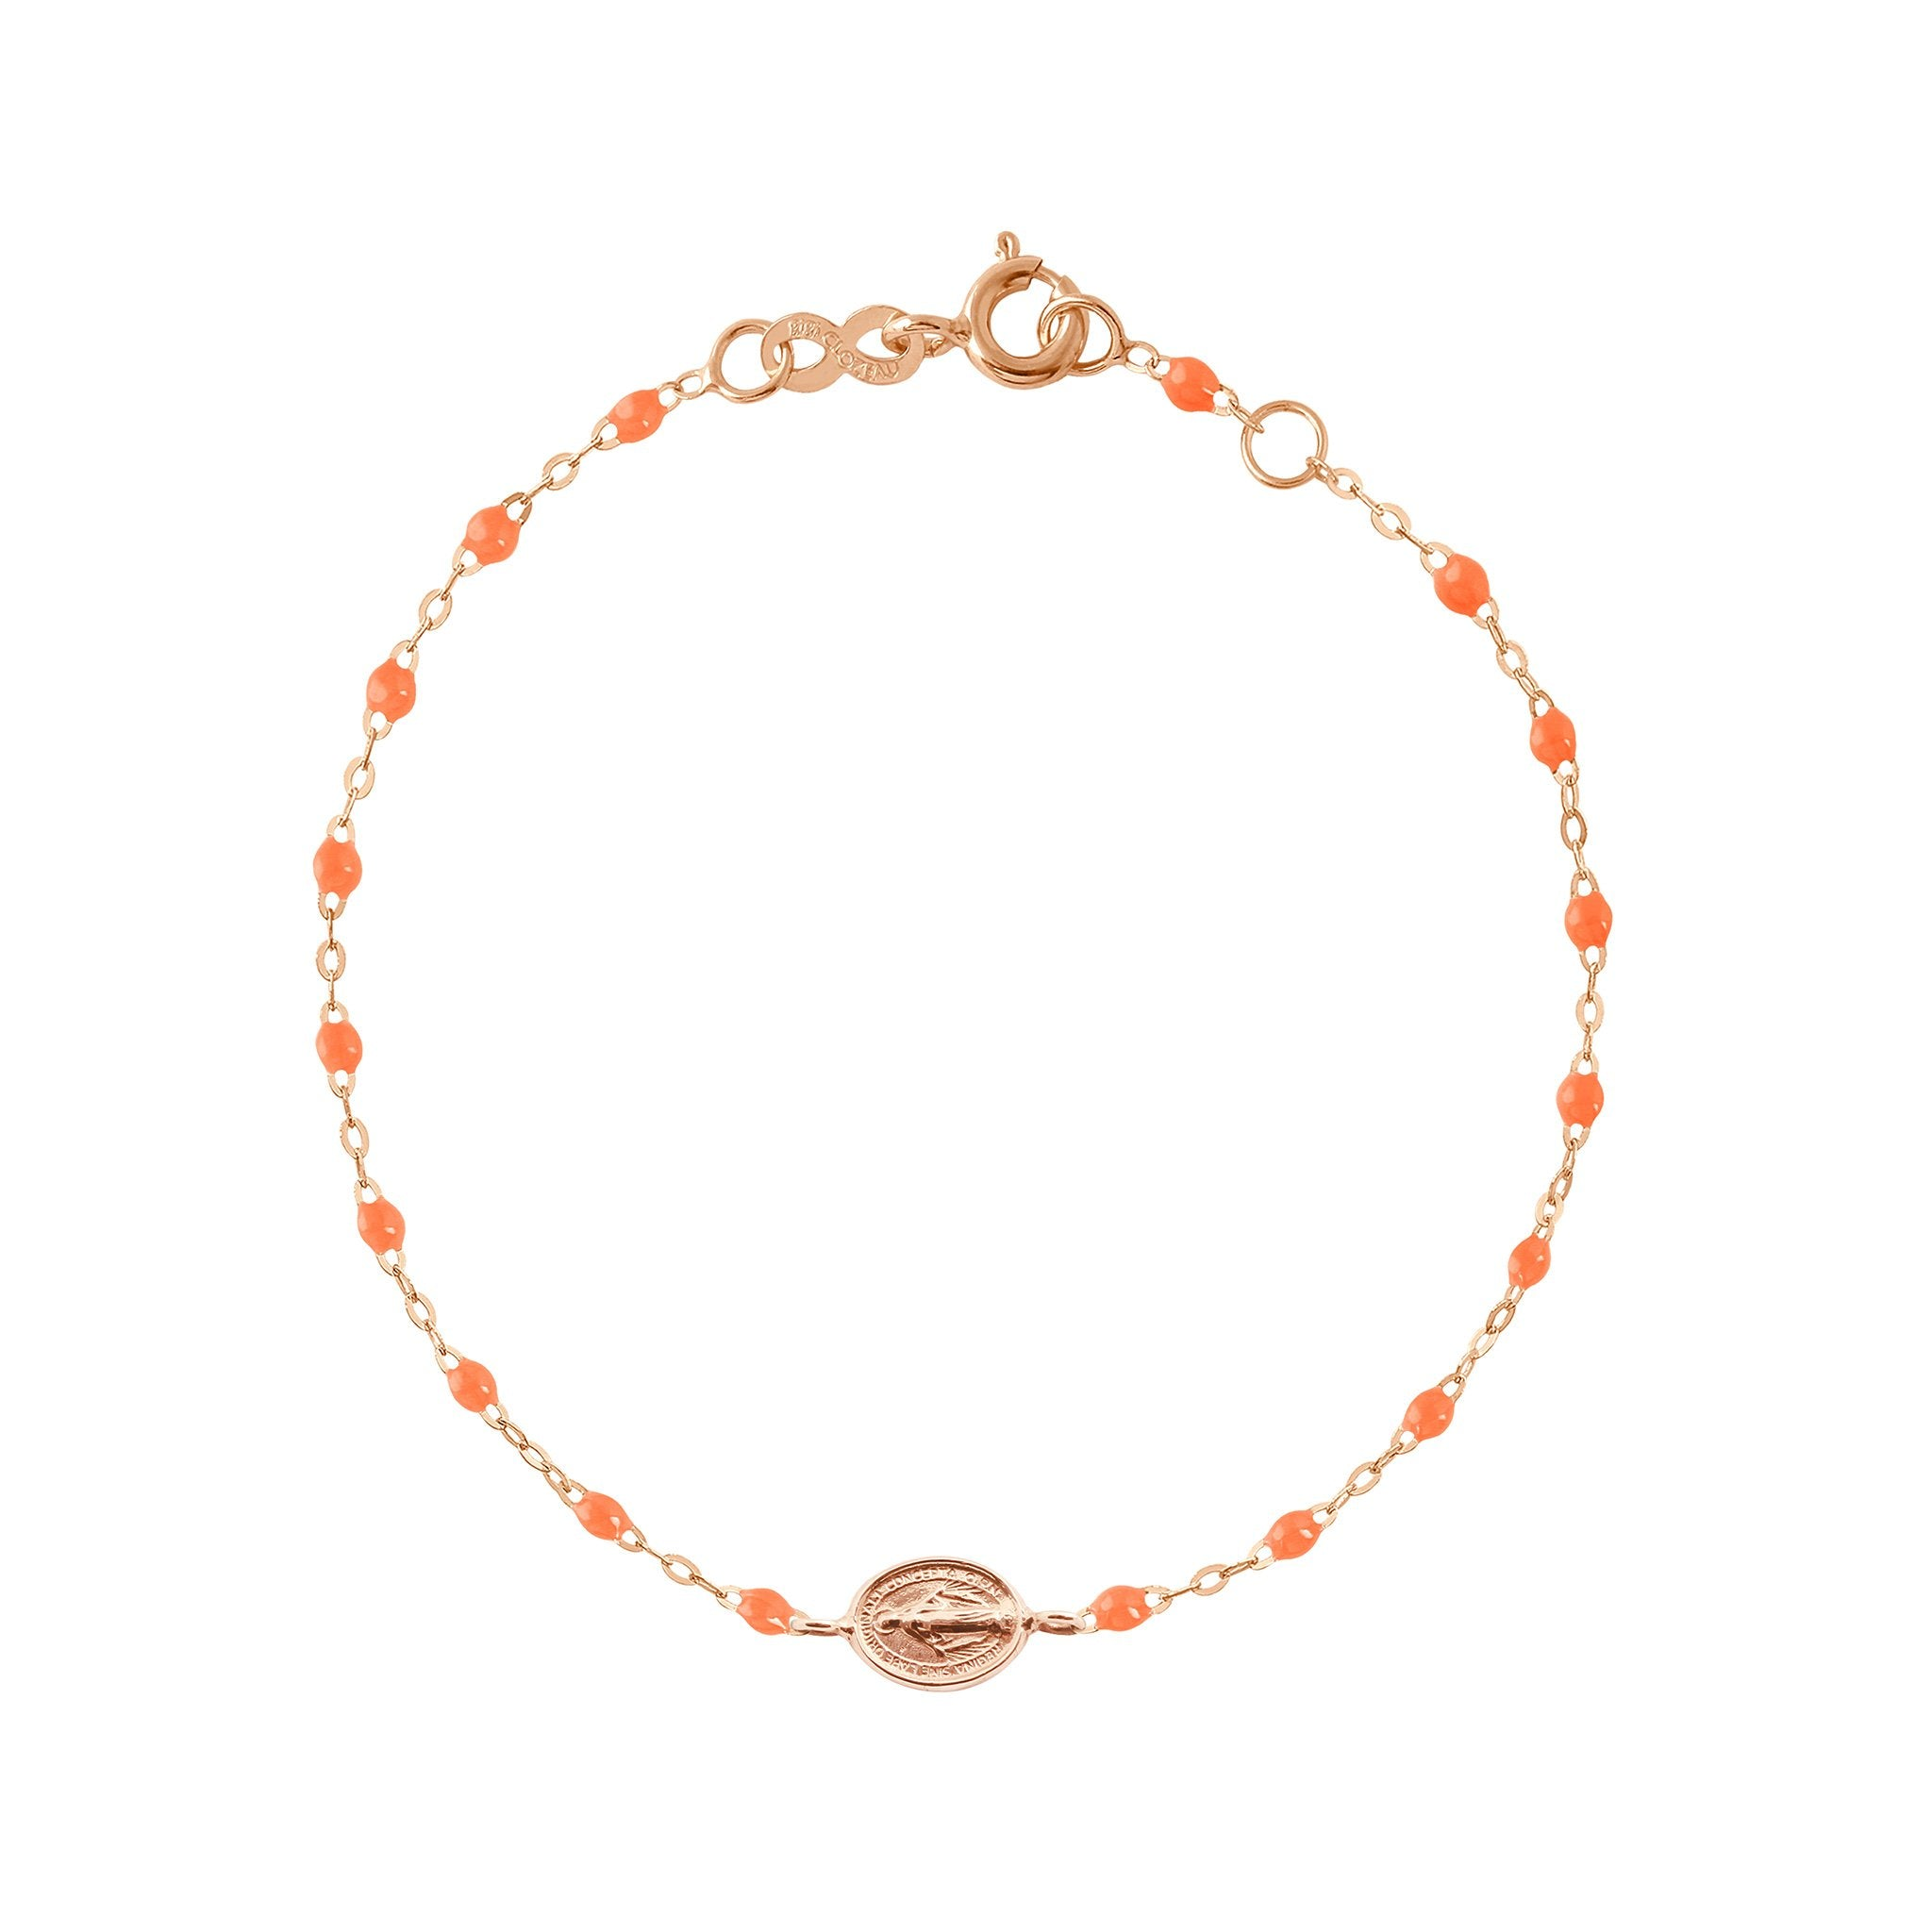 Gigi Clozeau - Bracelet orange fluo Madone or rose, 17 cm